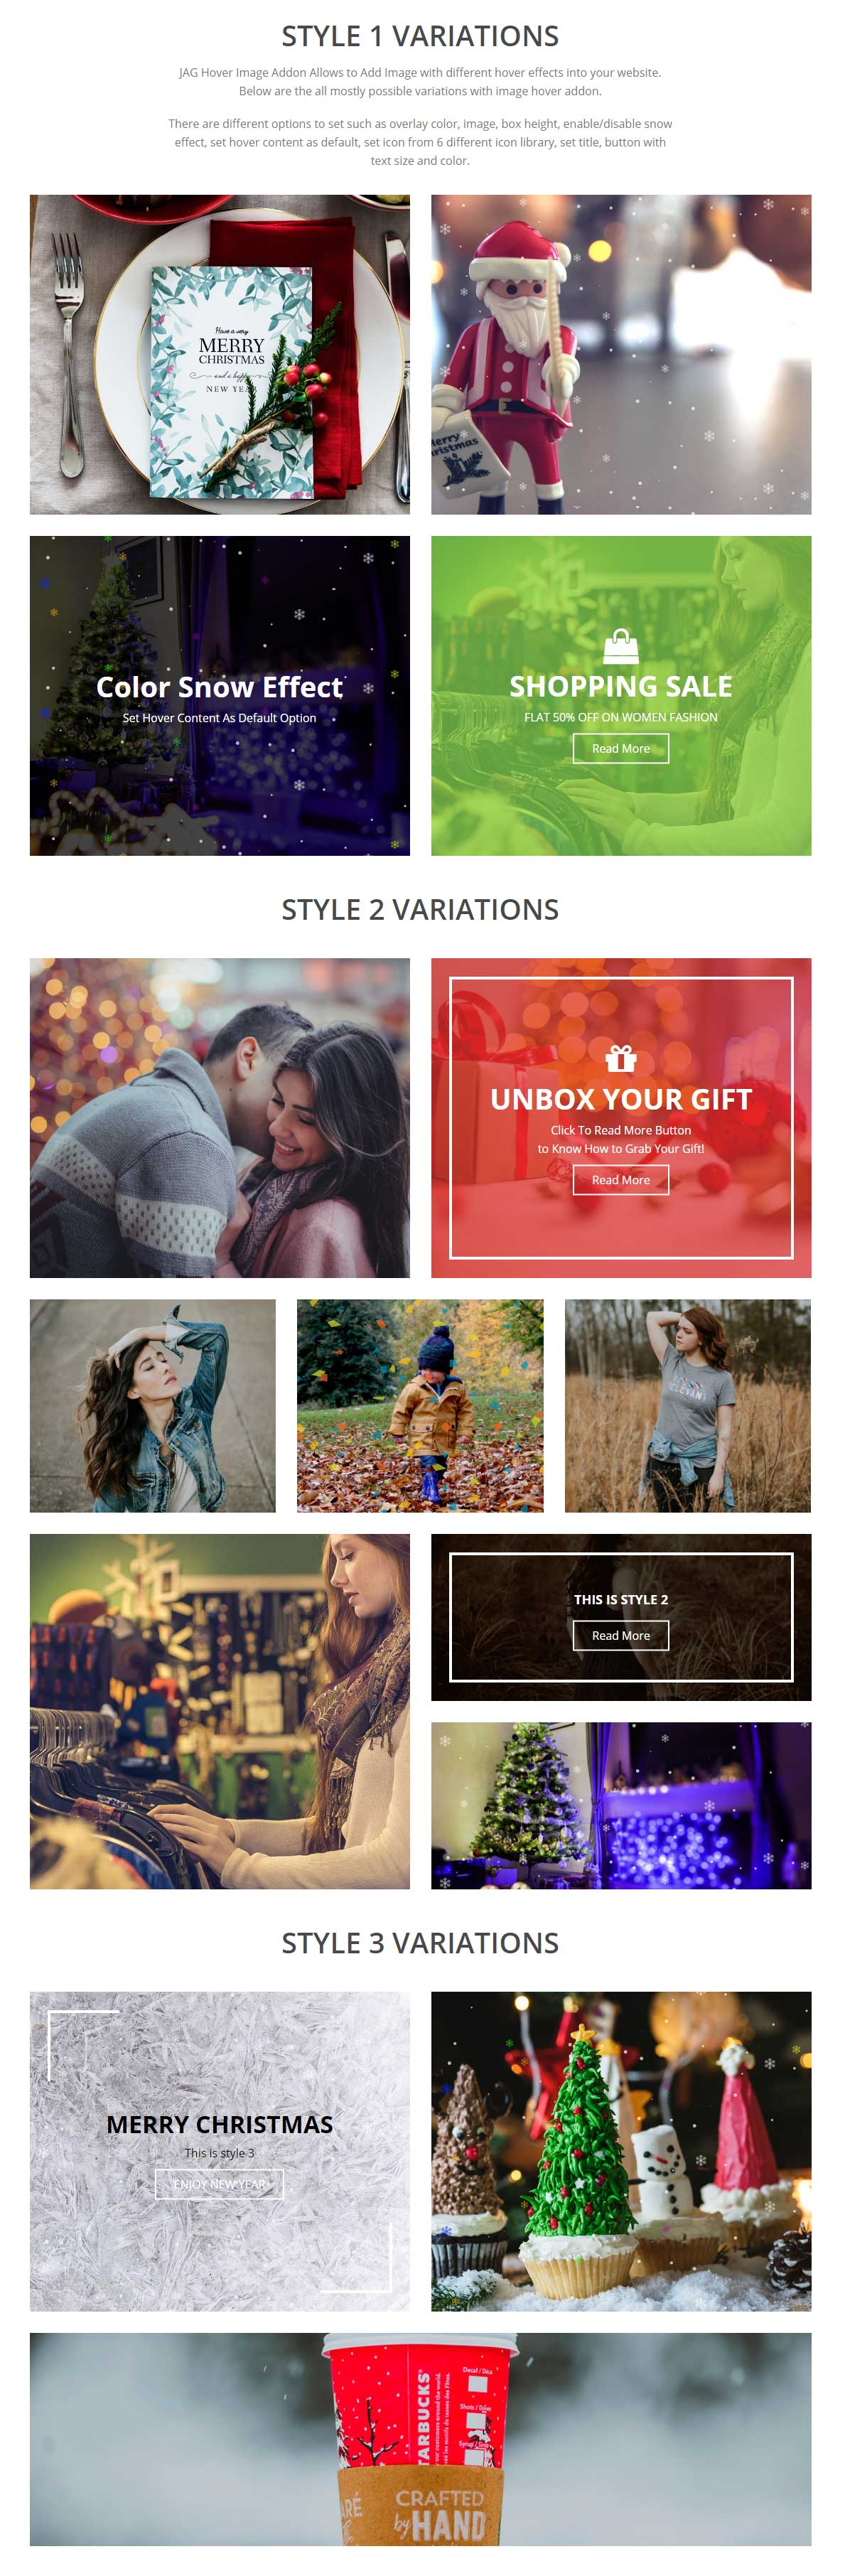 Image Hover VC addon